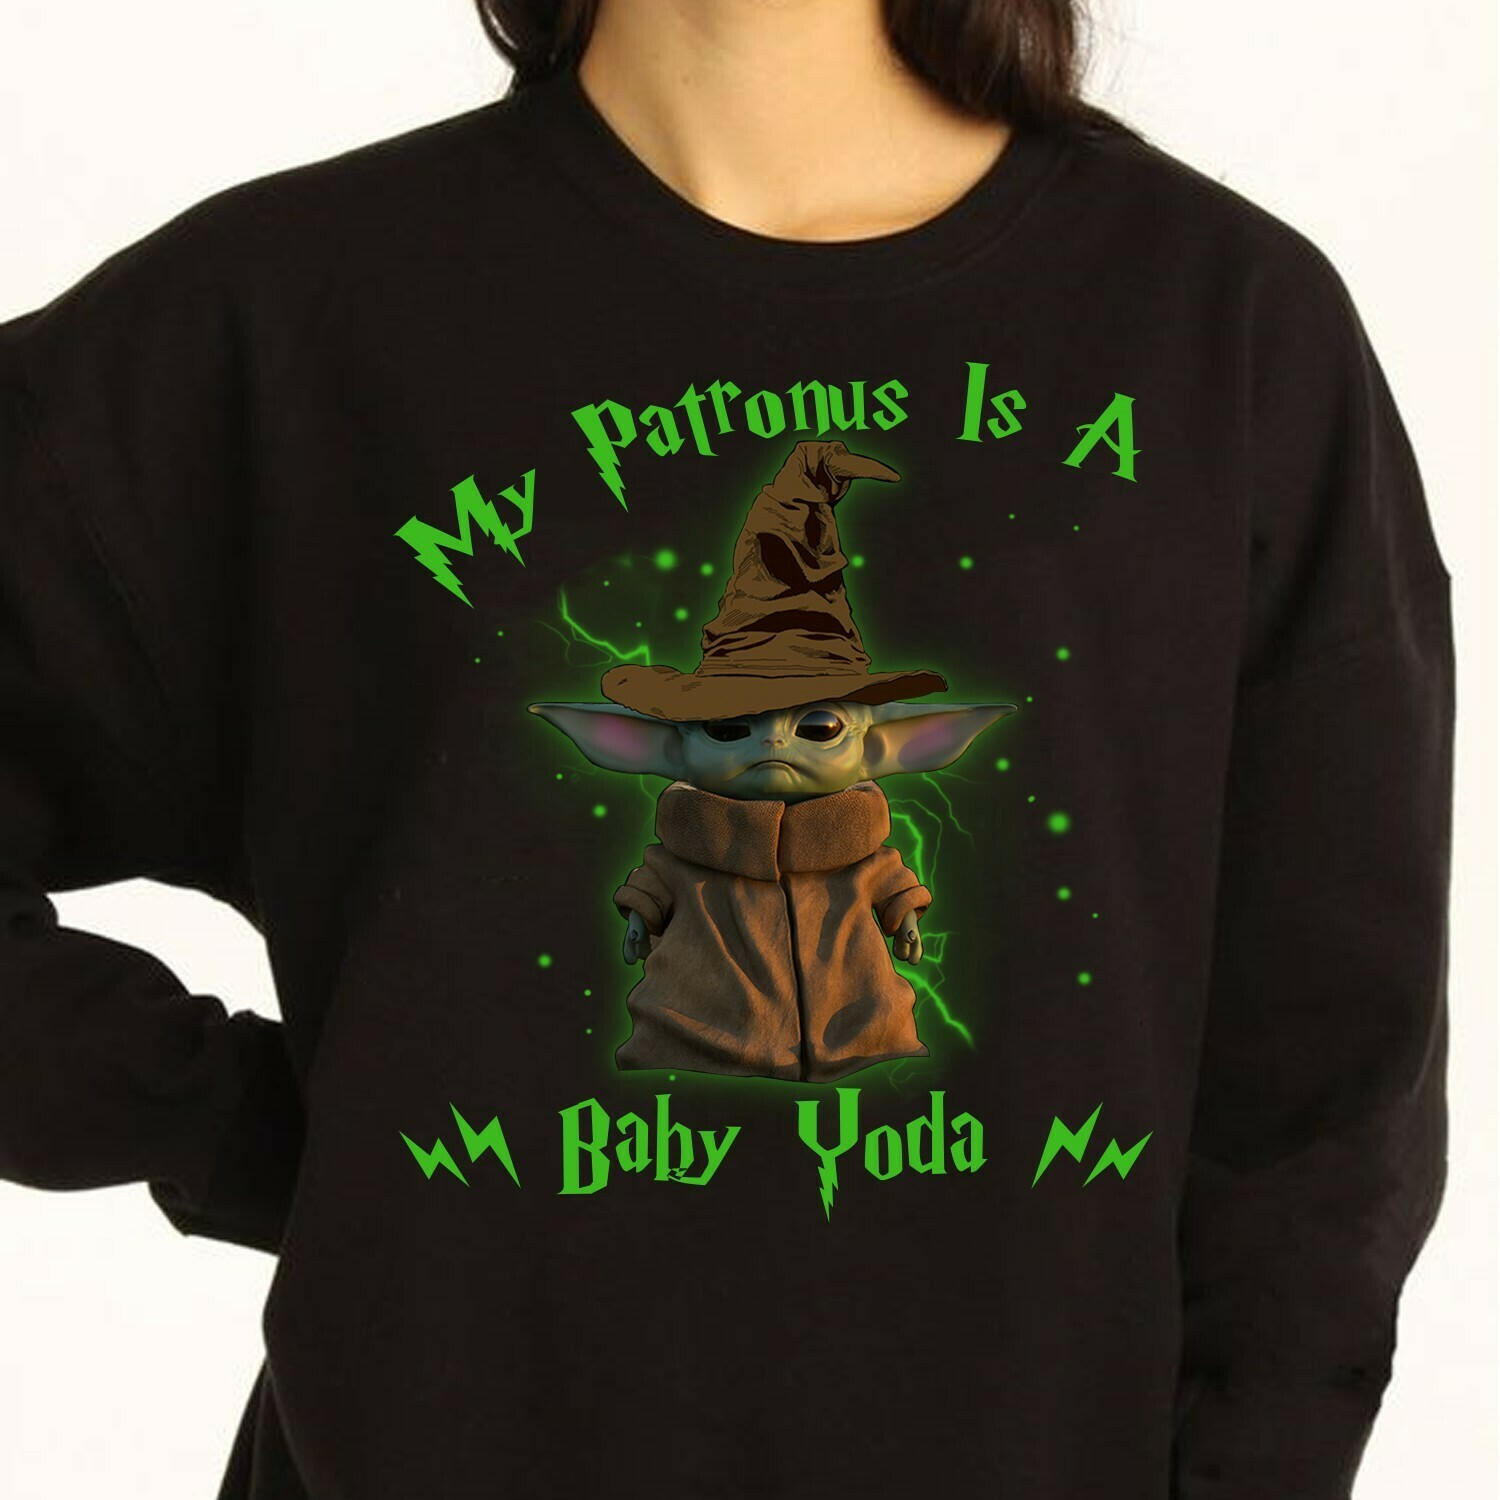 My Patronus is a baby Yoda Gifts,Mandalorian Pocket Star Wars Parody Scarf The Child Discovery Silhouette Tee T-Shirt Long Sleeve Sweatshirt Hoodie Jolly Family Gifts